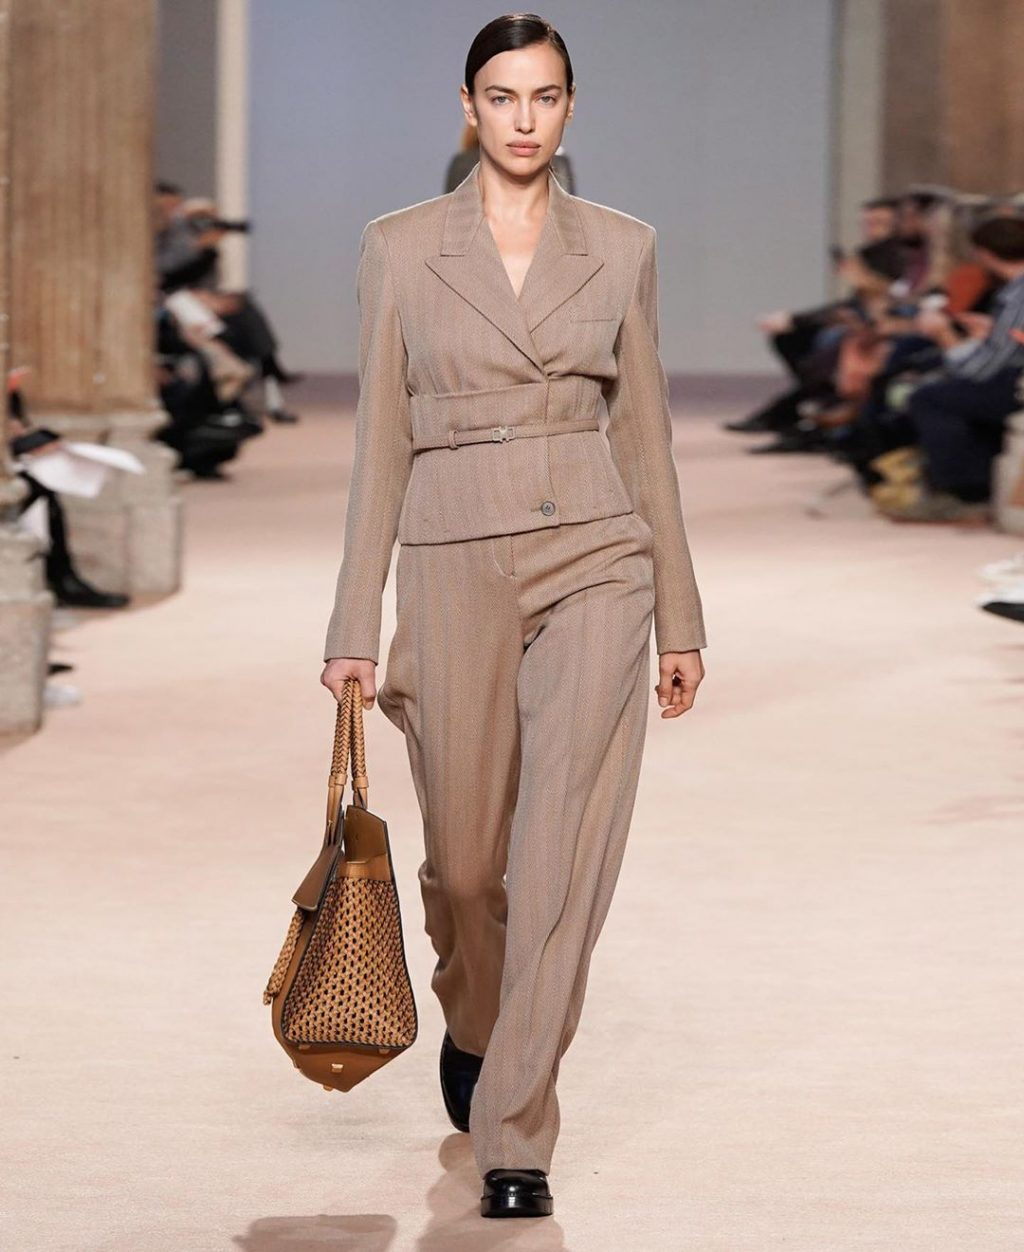 Salvatore Ferragamo Emerges as the Thinking Woman's Label